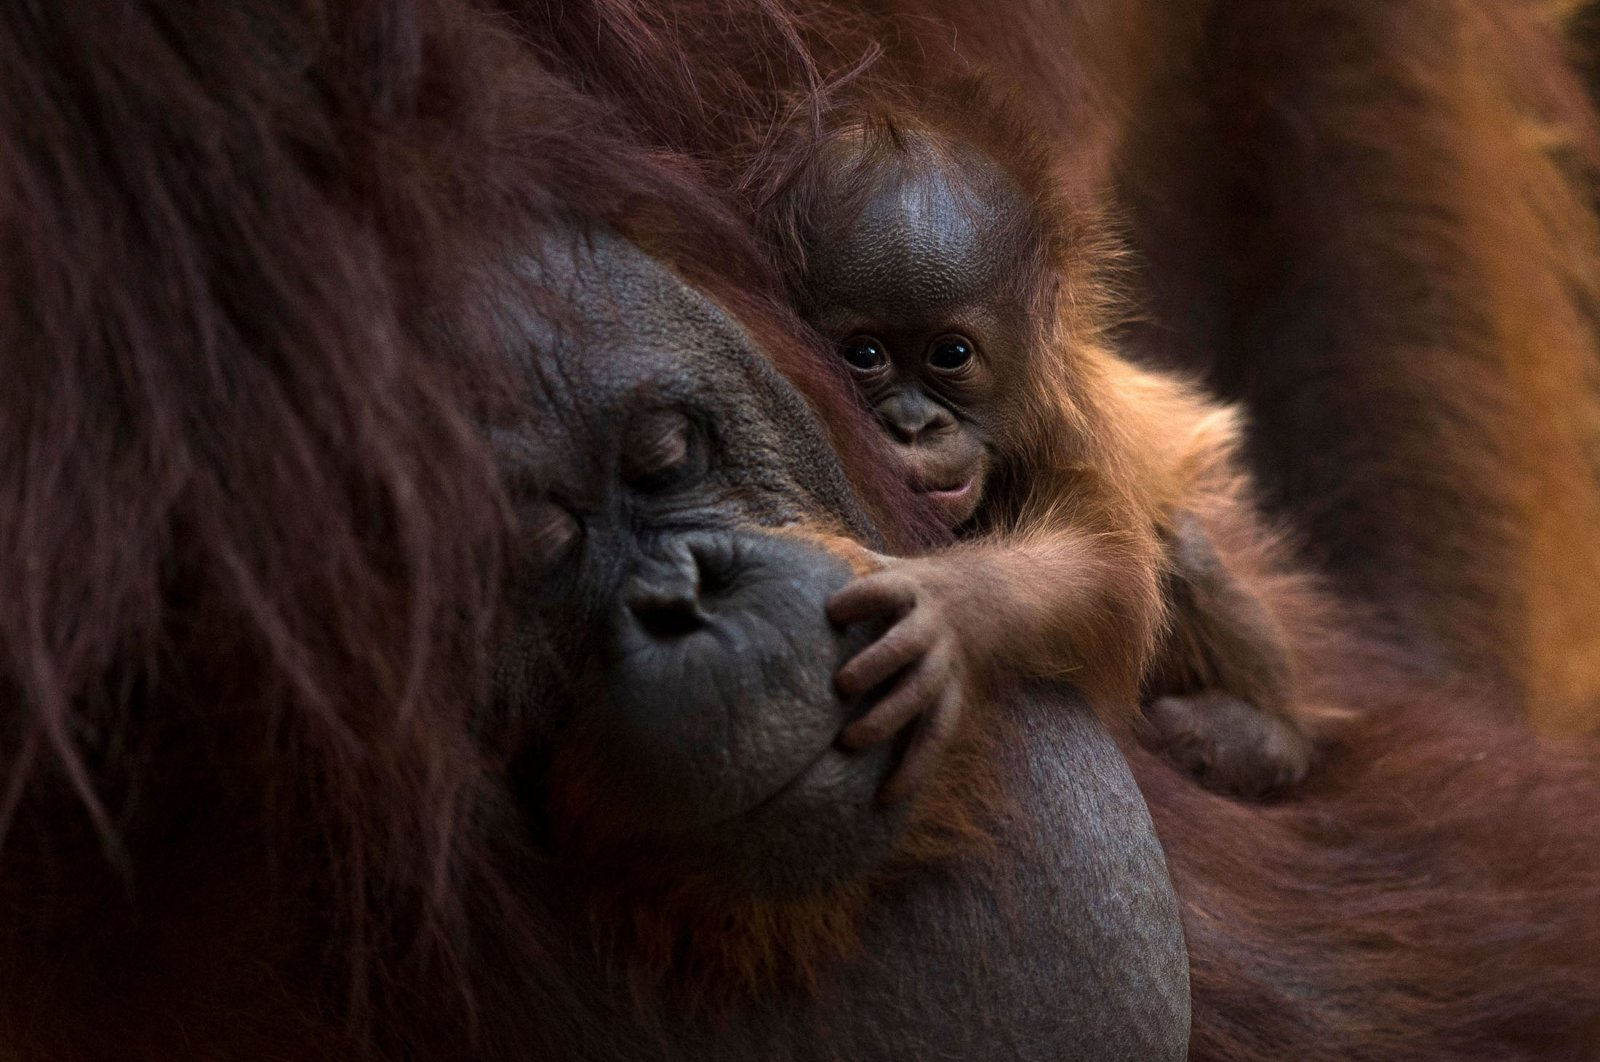 A Bornean orangutan called Suli holds her newborn baby at their enclosure at the Bioparc zoological park in Fuengirola, Spain, on Aug. 12, 2021. (AFP Photo)